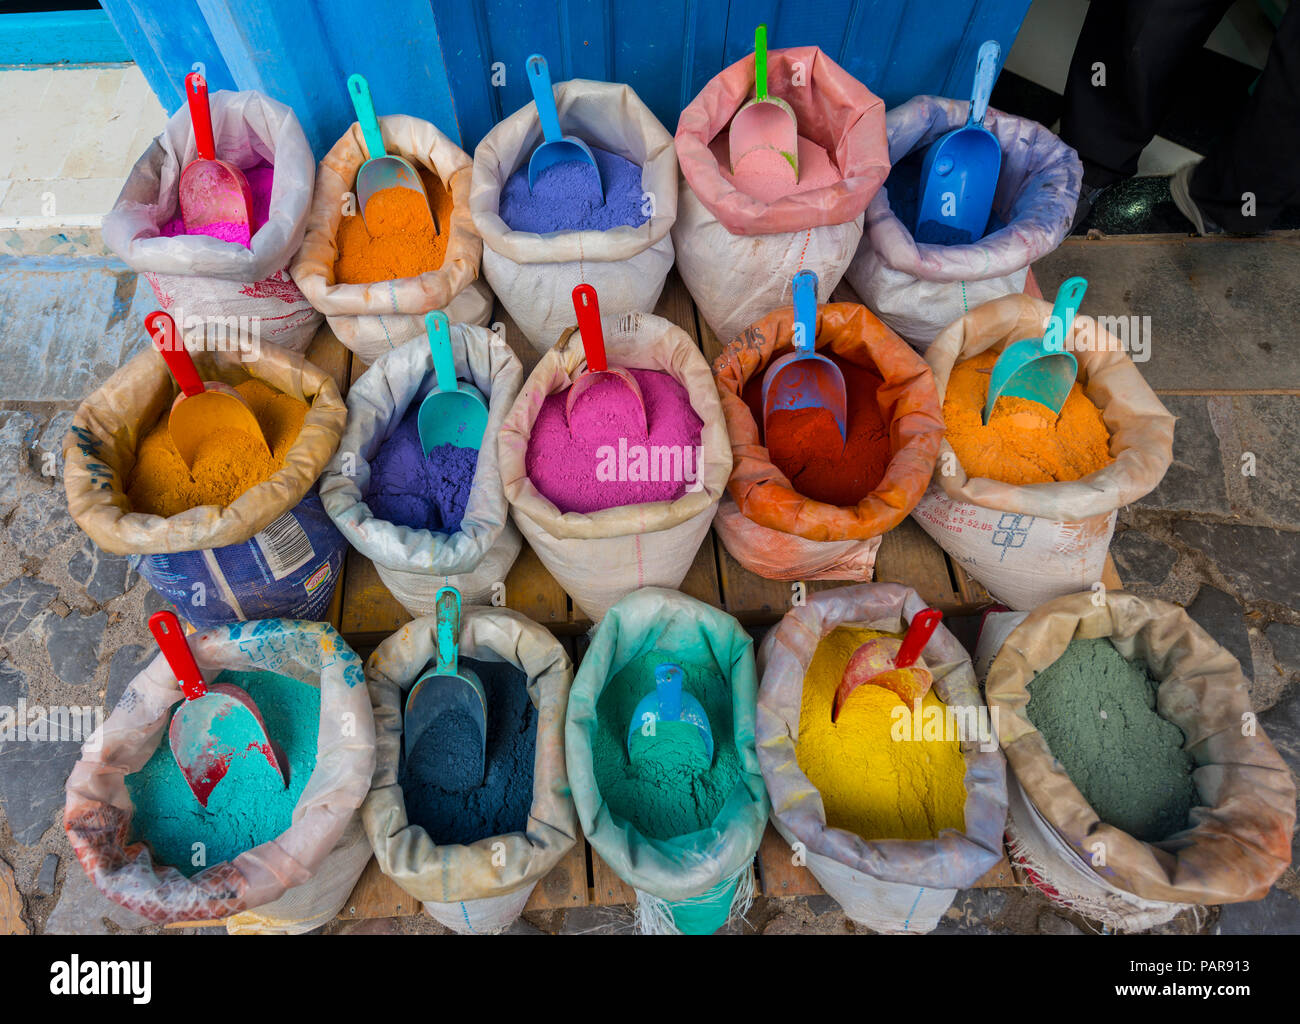 Sales stand with many bright colors, medina of Chefchaouen, Chaouen, Tanger-Tétouan, Morocco - Stock Image